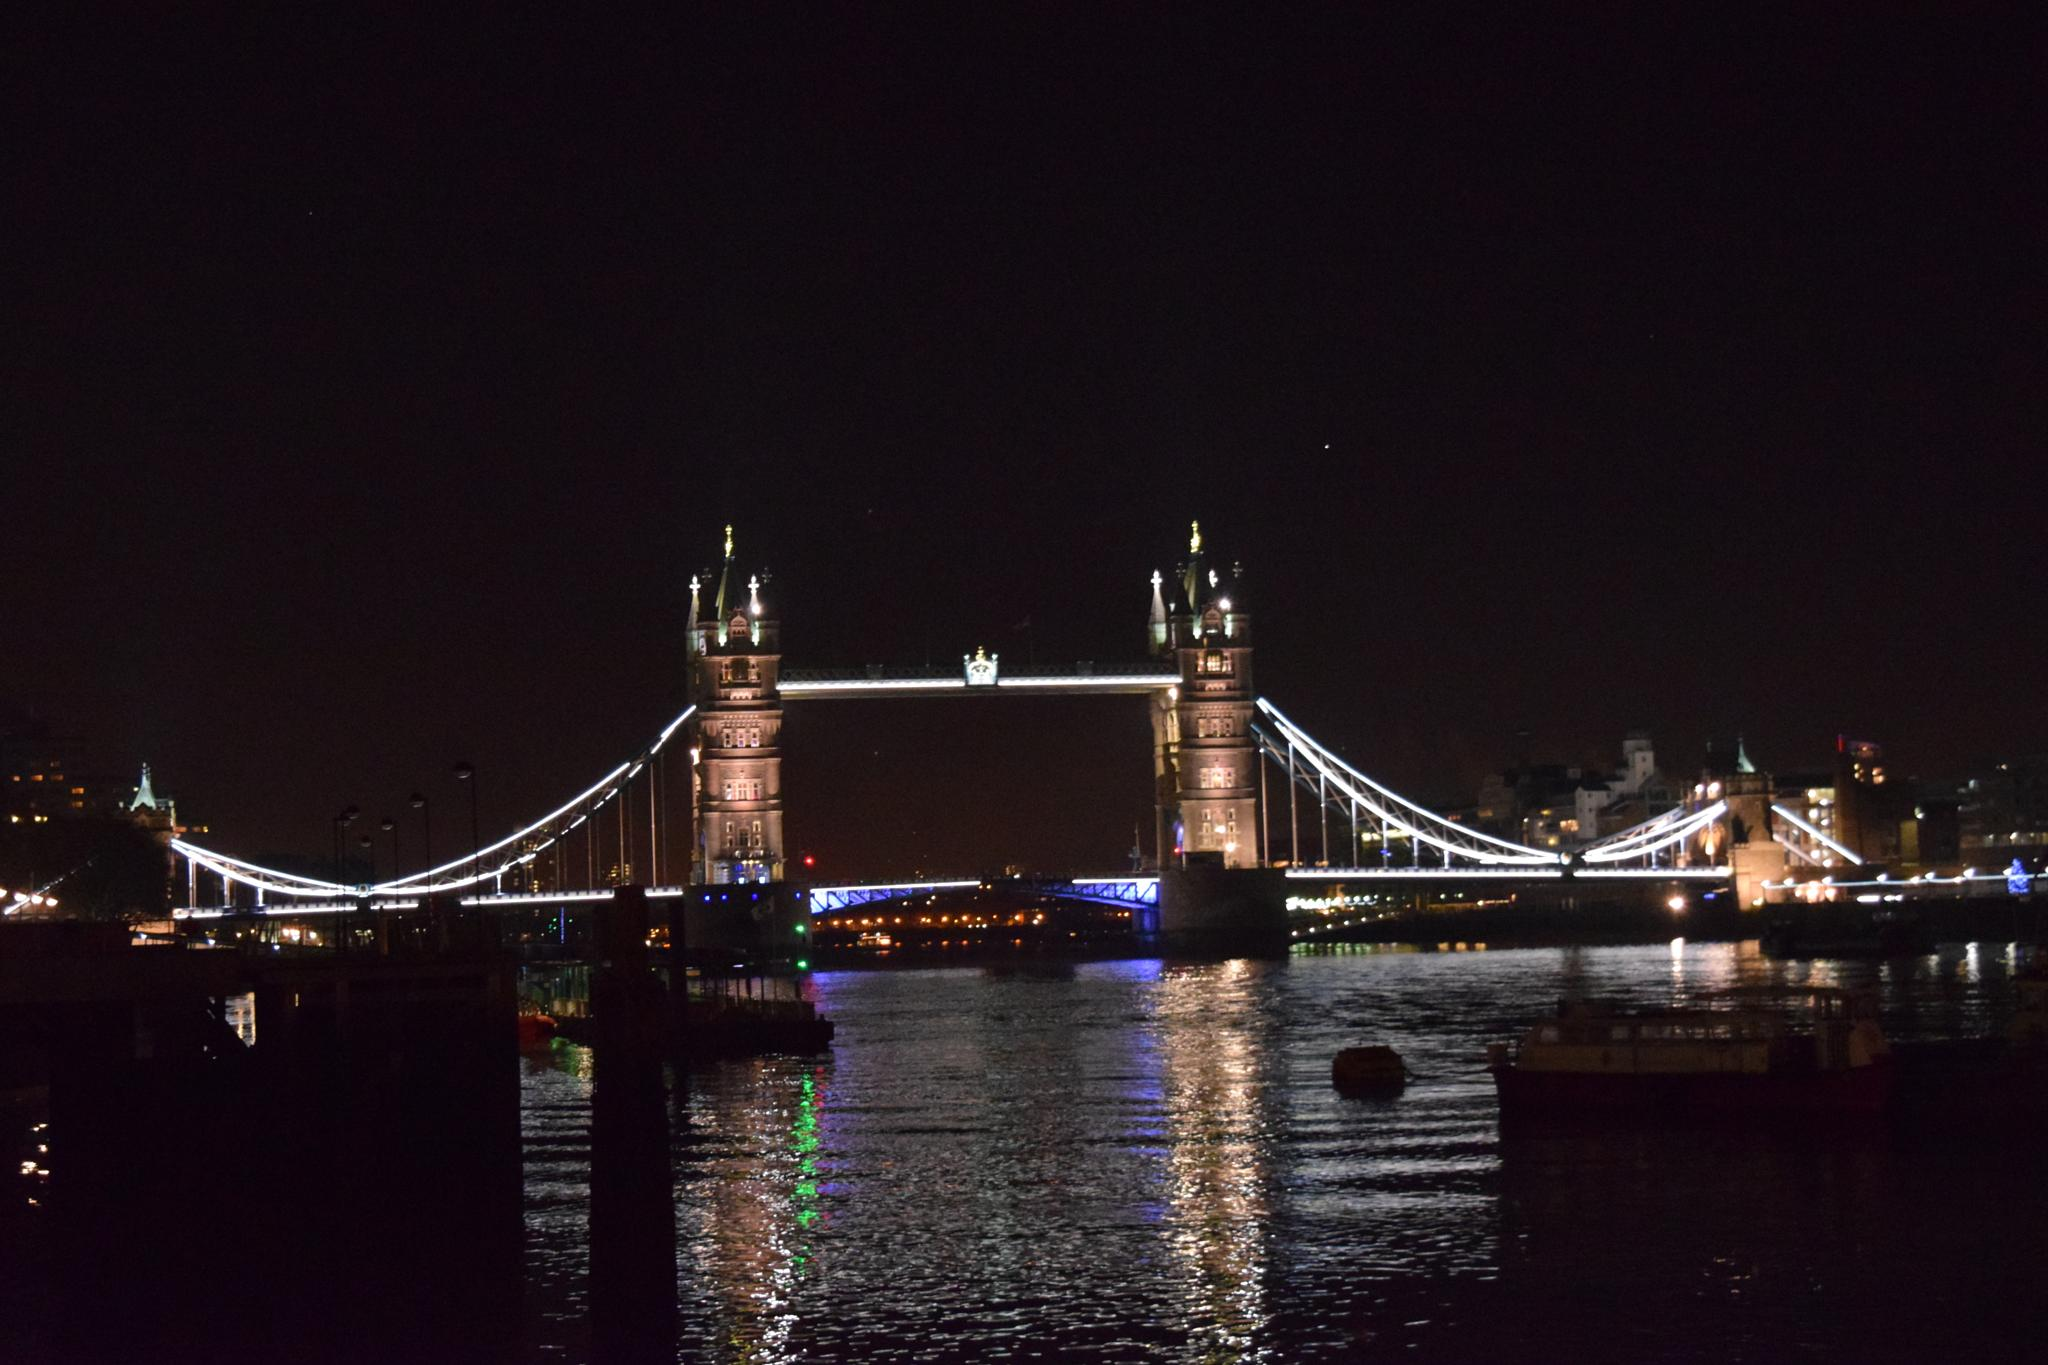 Tower Bridge by Gwynboyo